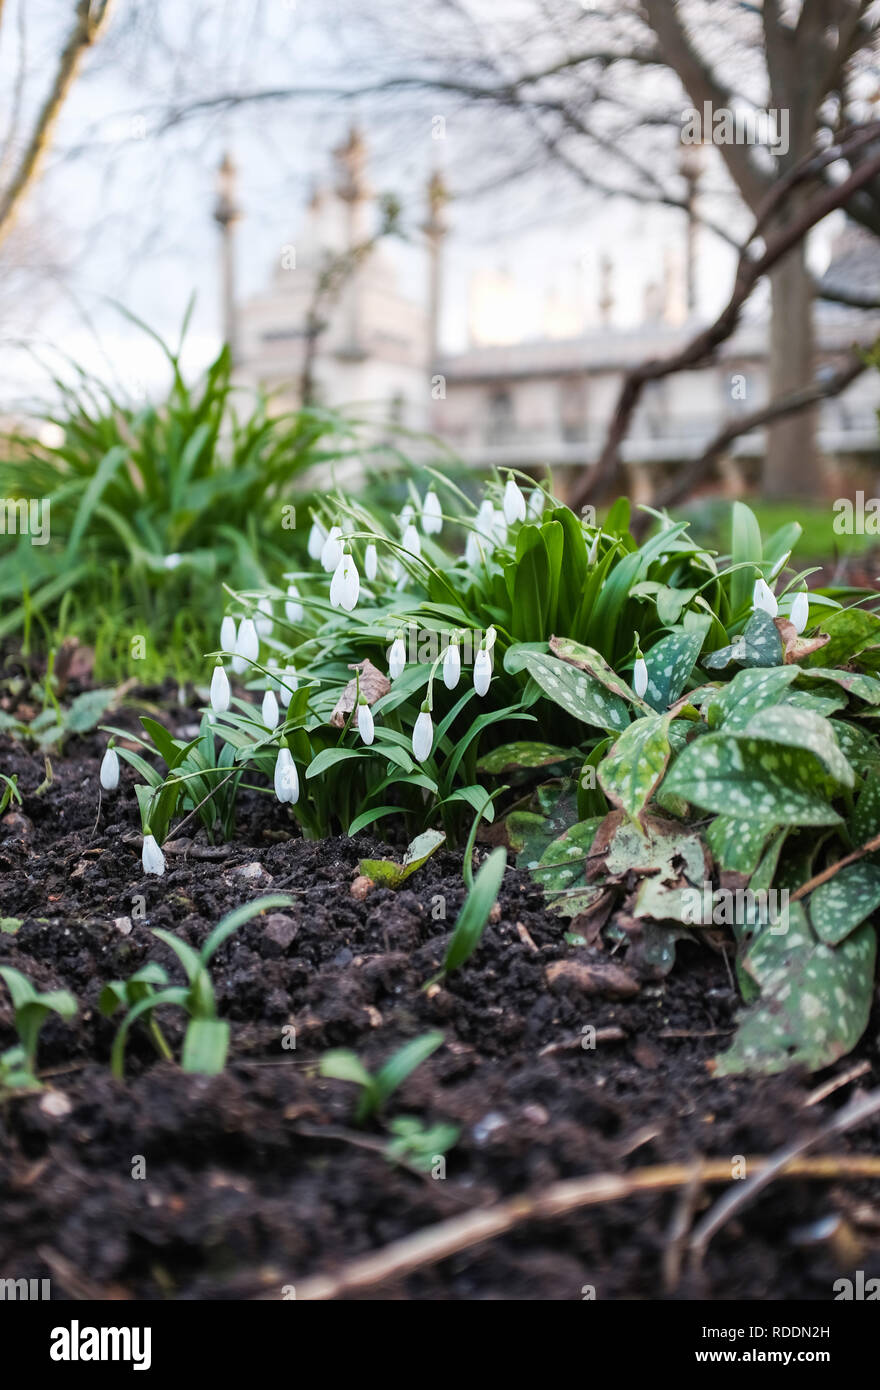 Brighton, UK. 18th Jan, 2019. Snowdrops ( Galanthus nivalis) shivering in Pavilion Gardens Brighton on a sunny but chilly winter morning as the cold weather is forecast to continue throughout Britain over the next few days Credit: Simon Dack/Alamy Live News - Stock Image